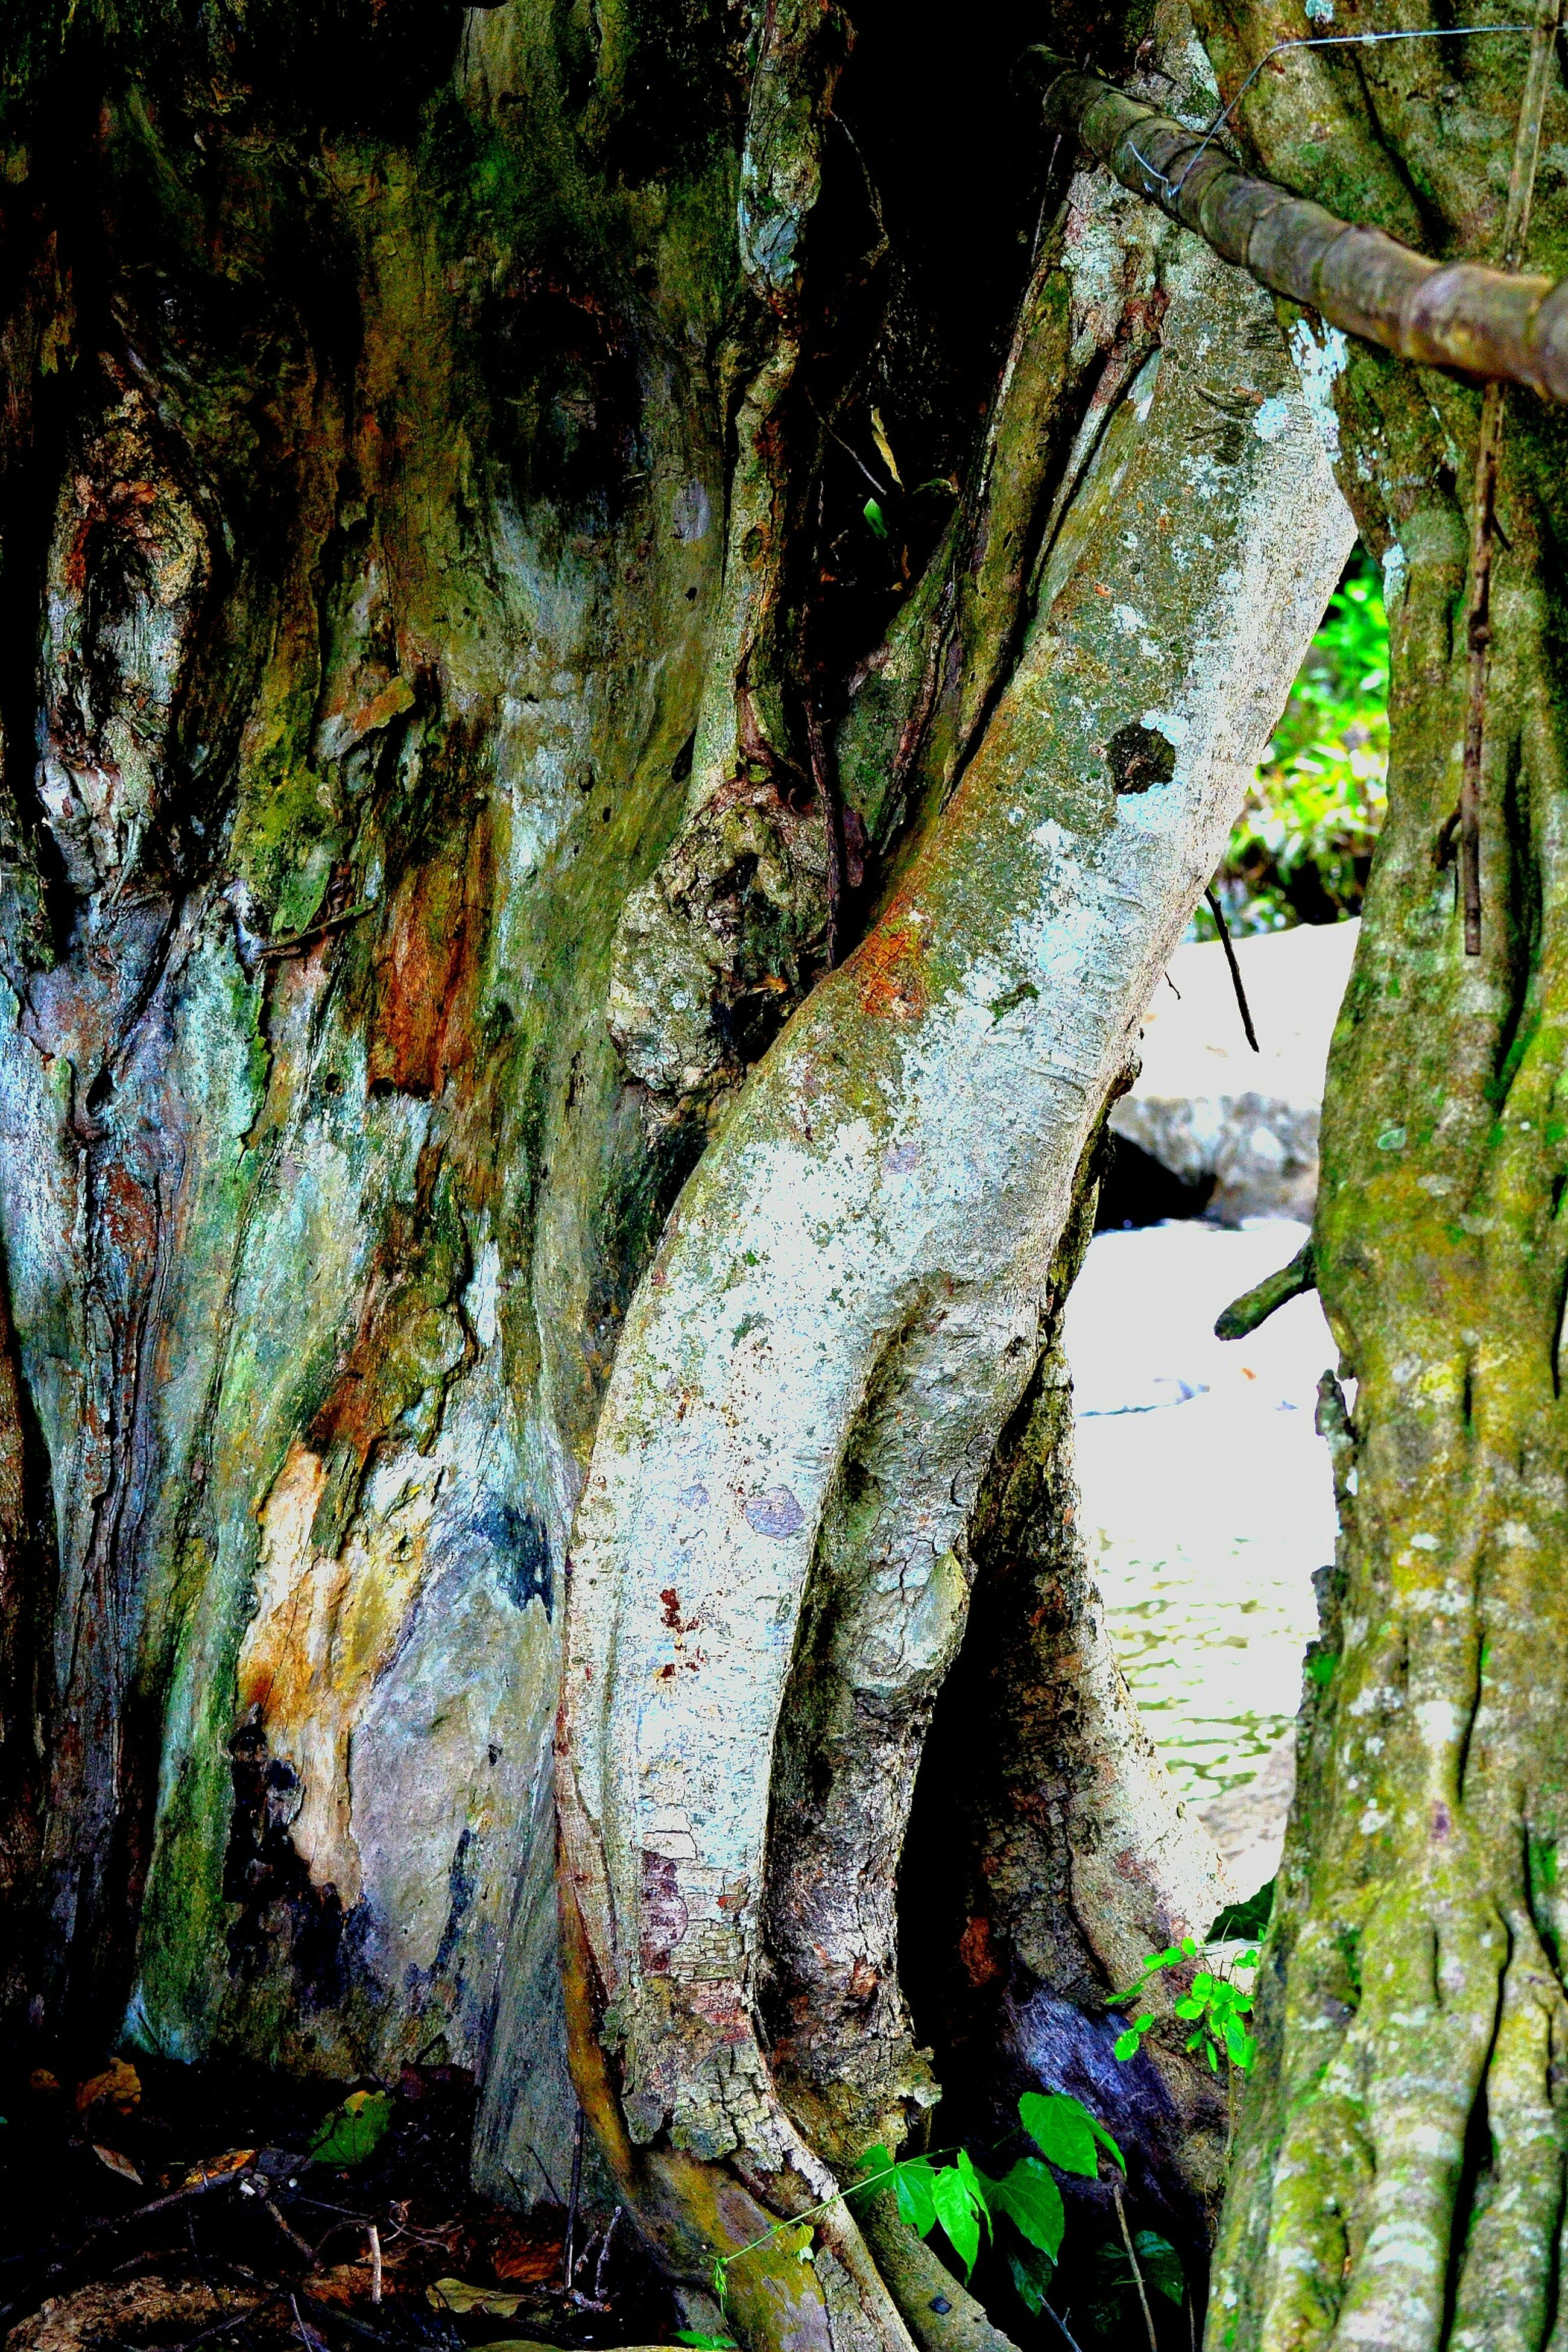 tree, tree trunk, weathered, old, textured, damaged, forest, moss, nature, growth, close-up, tranquility, rough, day, deterioration, low angle view, outdoors, no people, run-down, rock - object